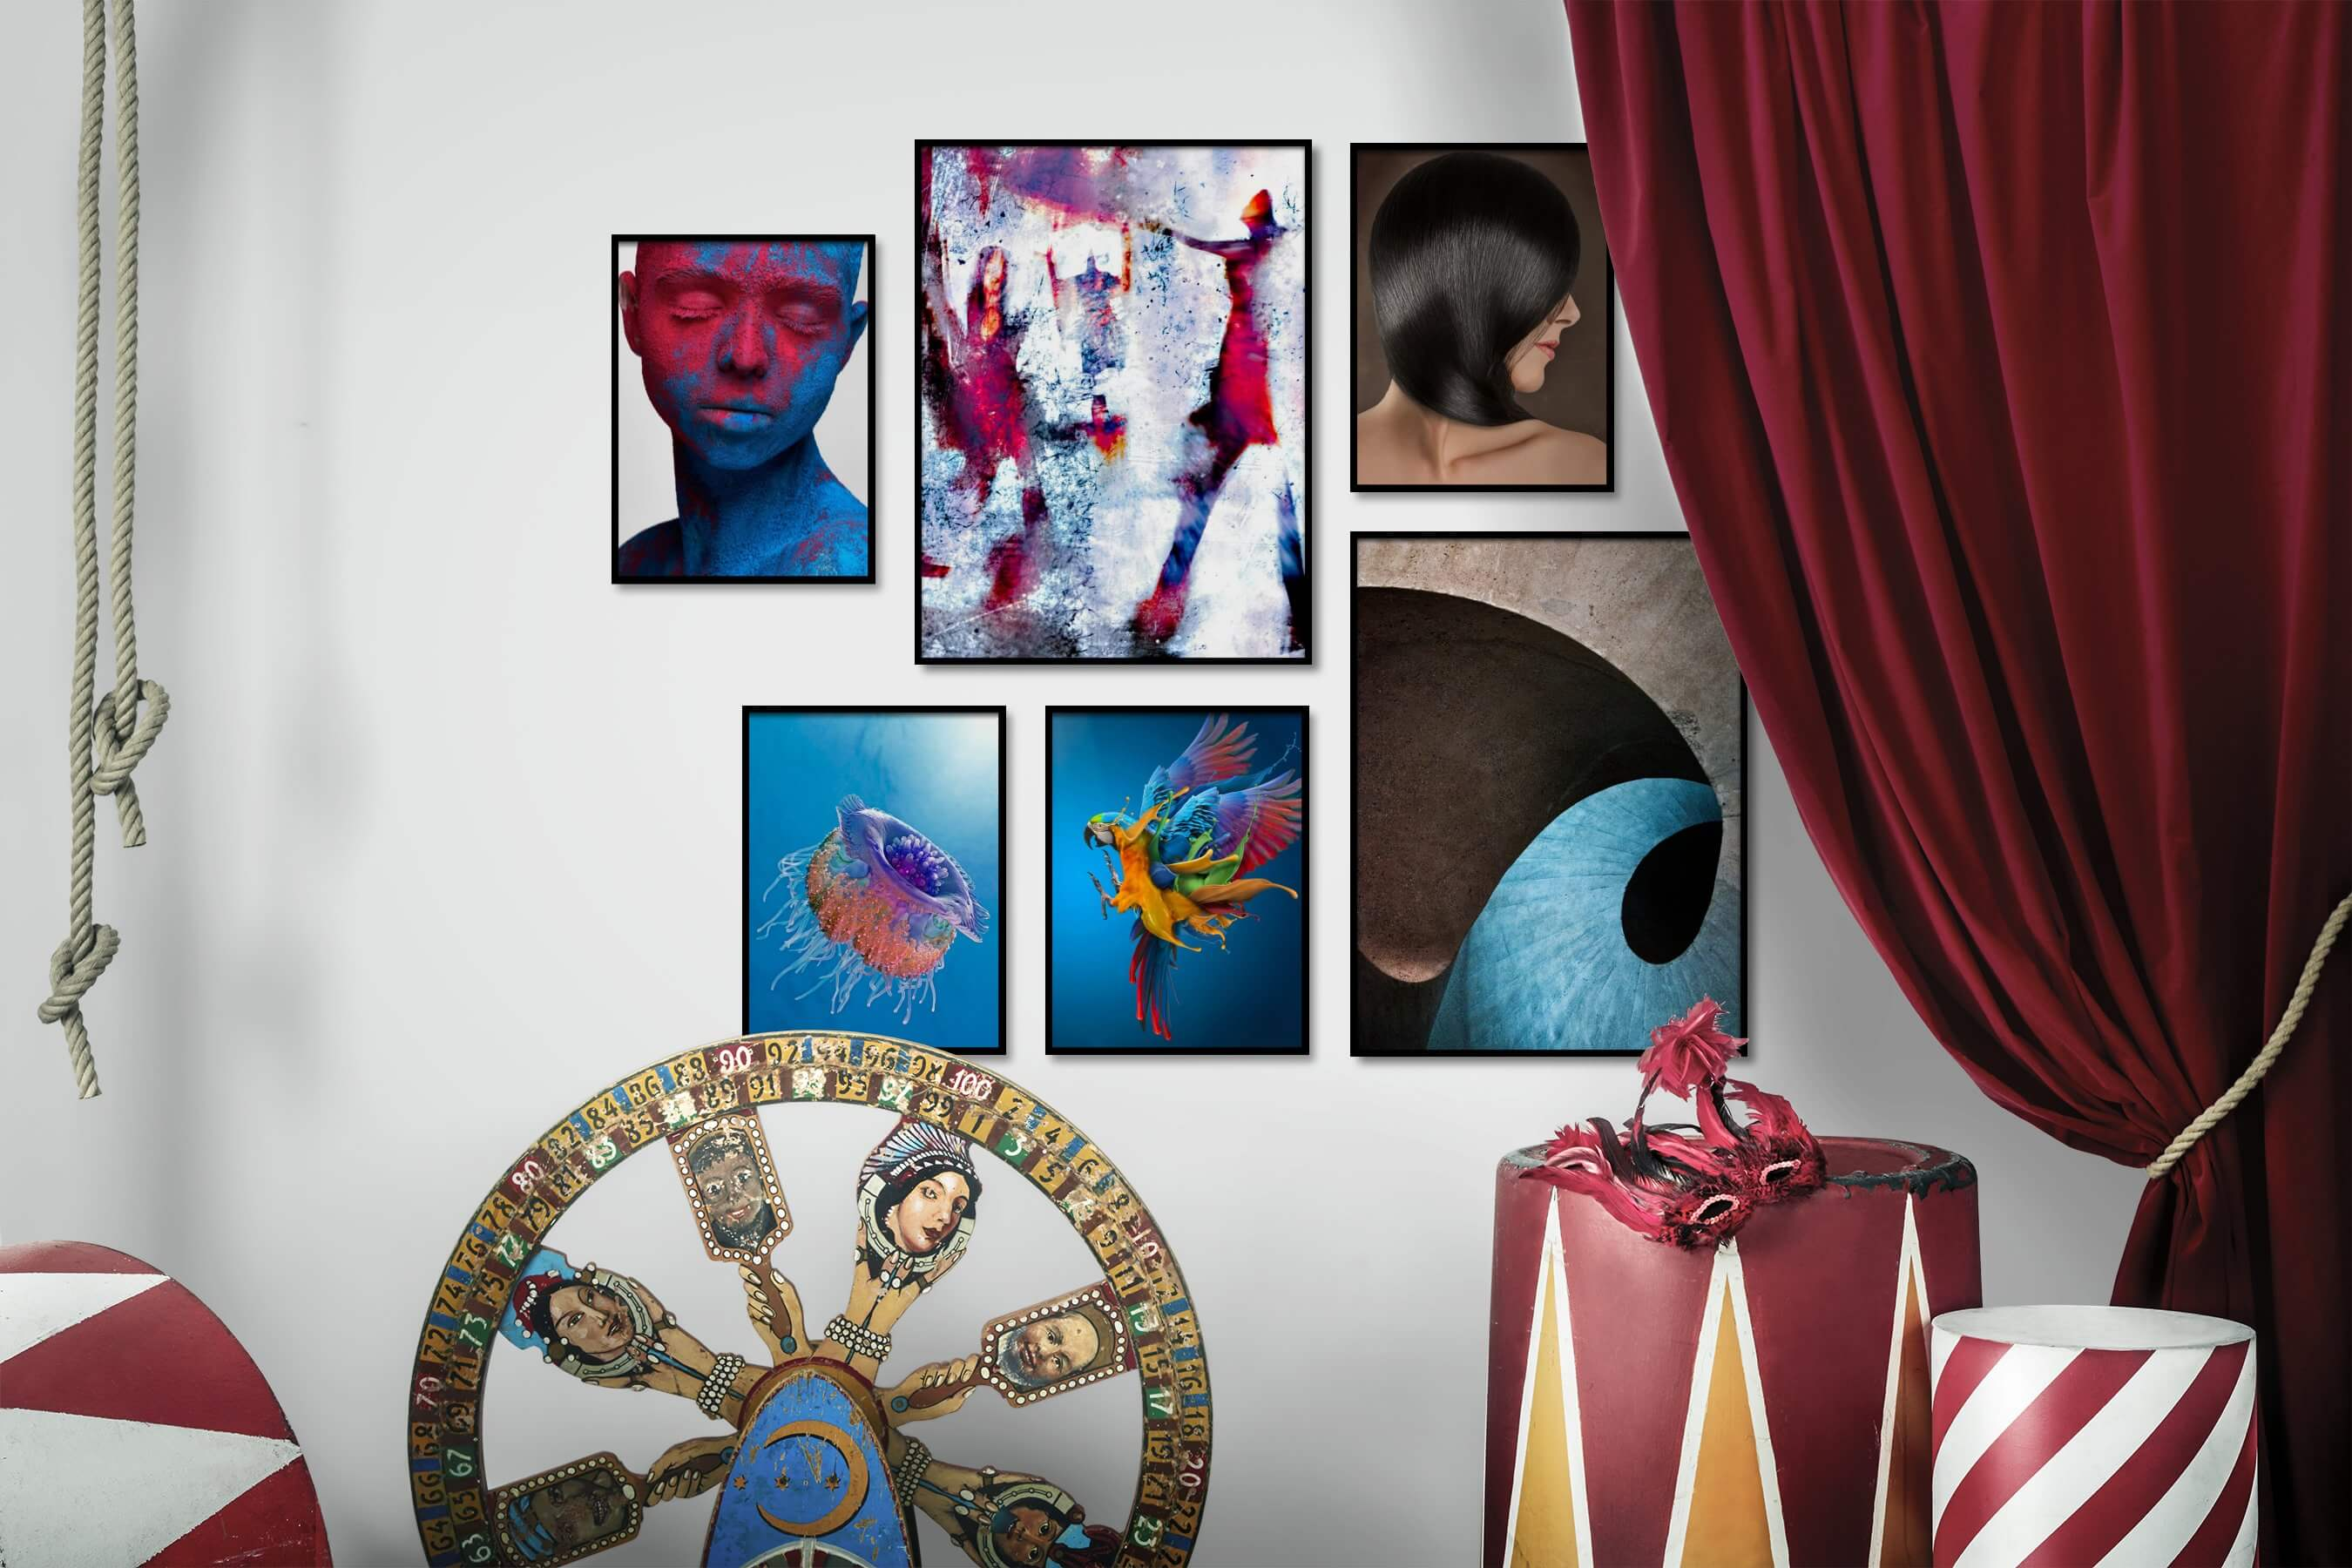 Gallery wall idea with six framed pictures arranged on a wall depicting Fashion & Beauty, Colorful, Artsy, For the Maximalist, For the Minimalist, Animals, and For the Moderate